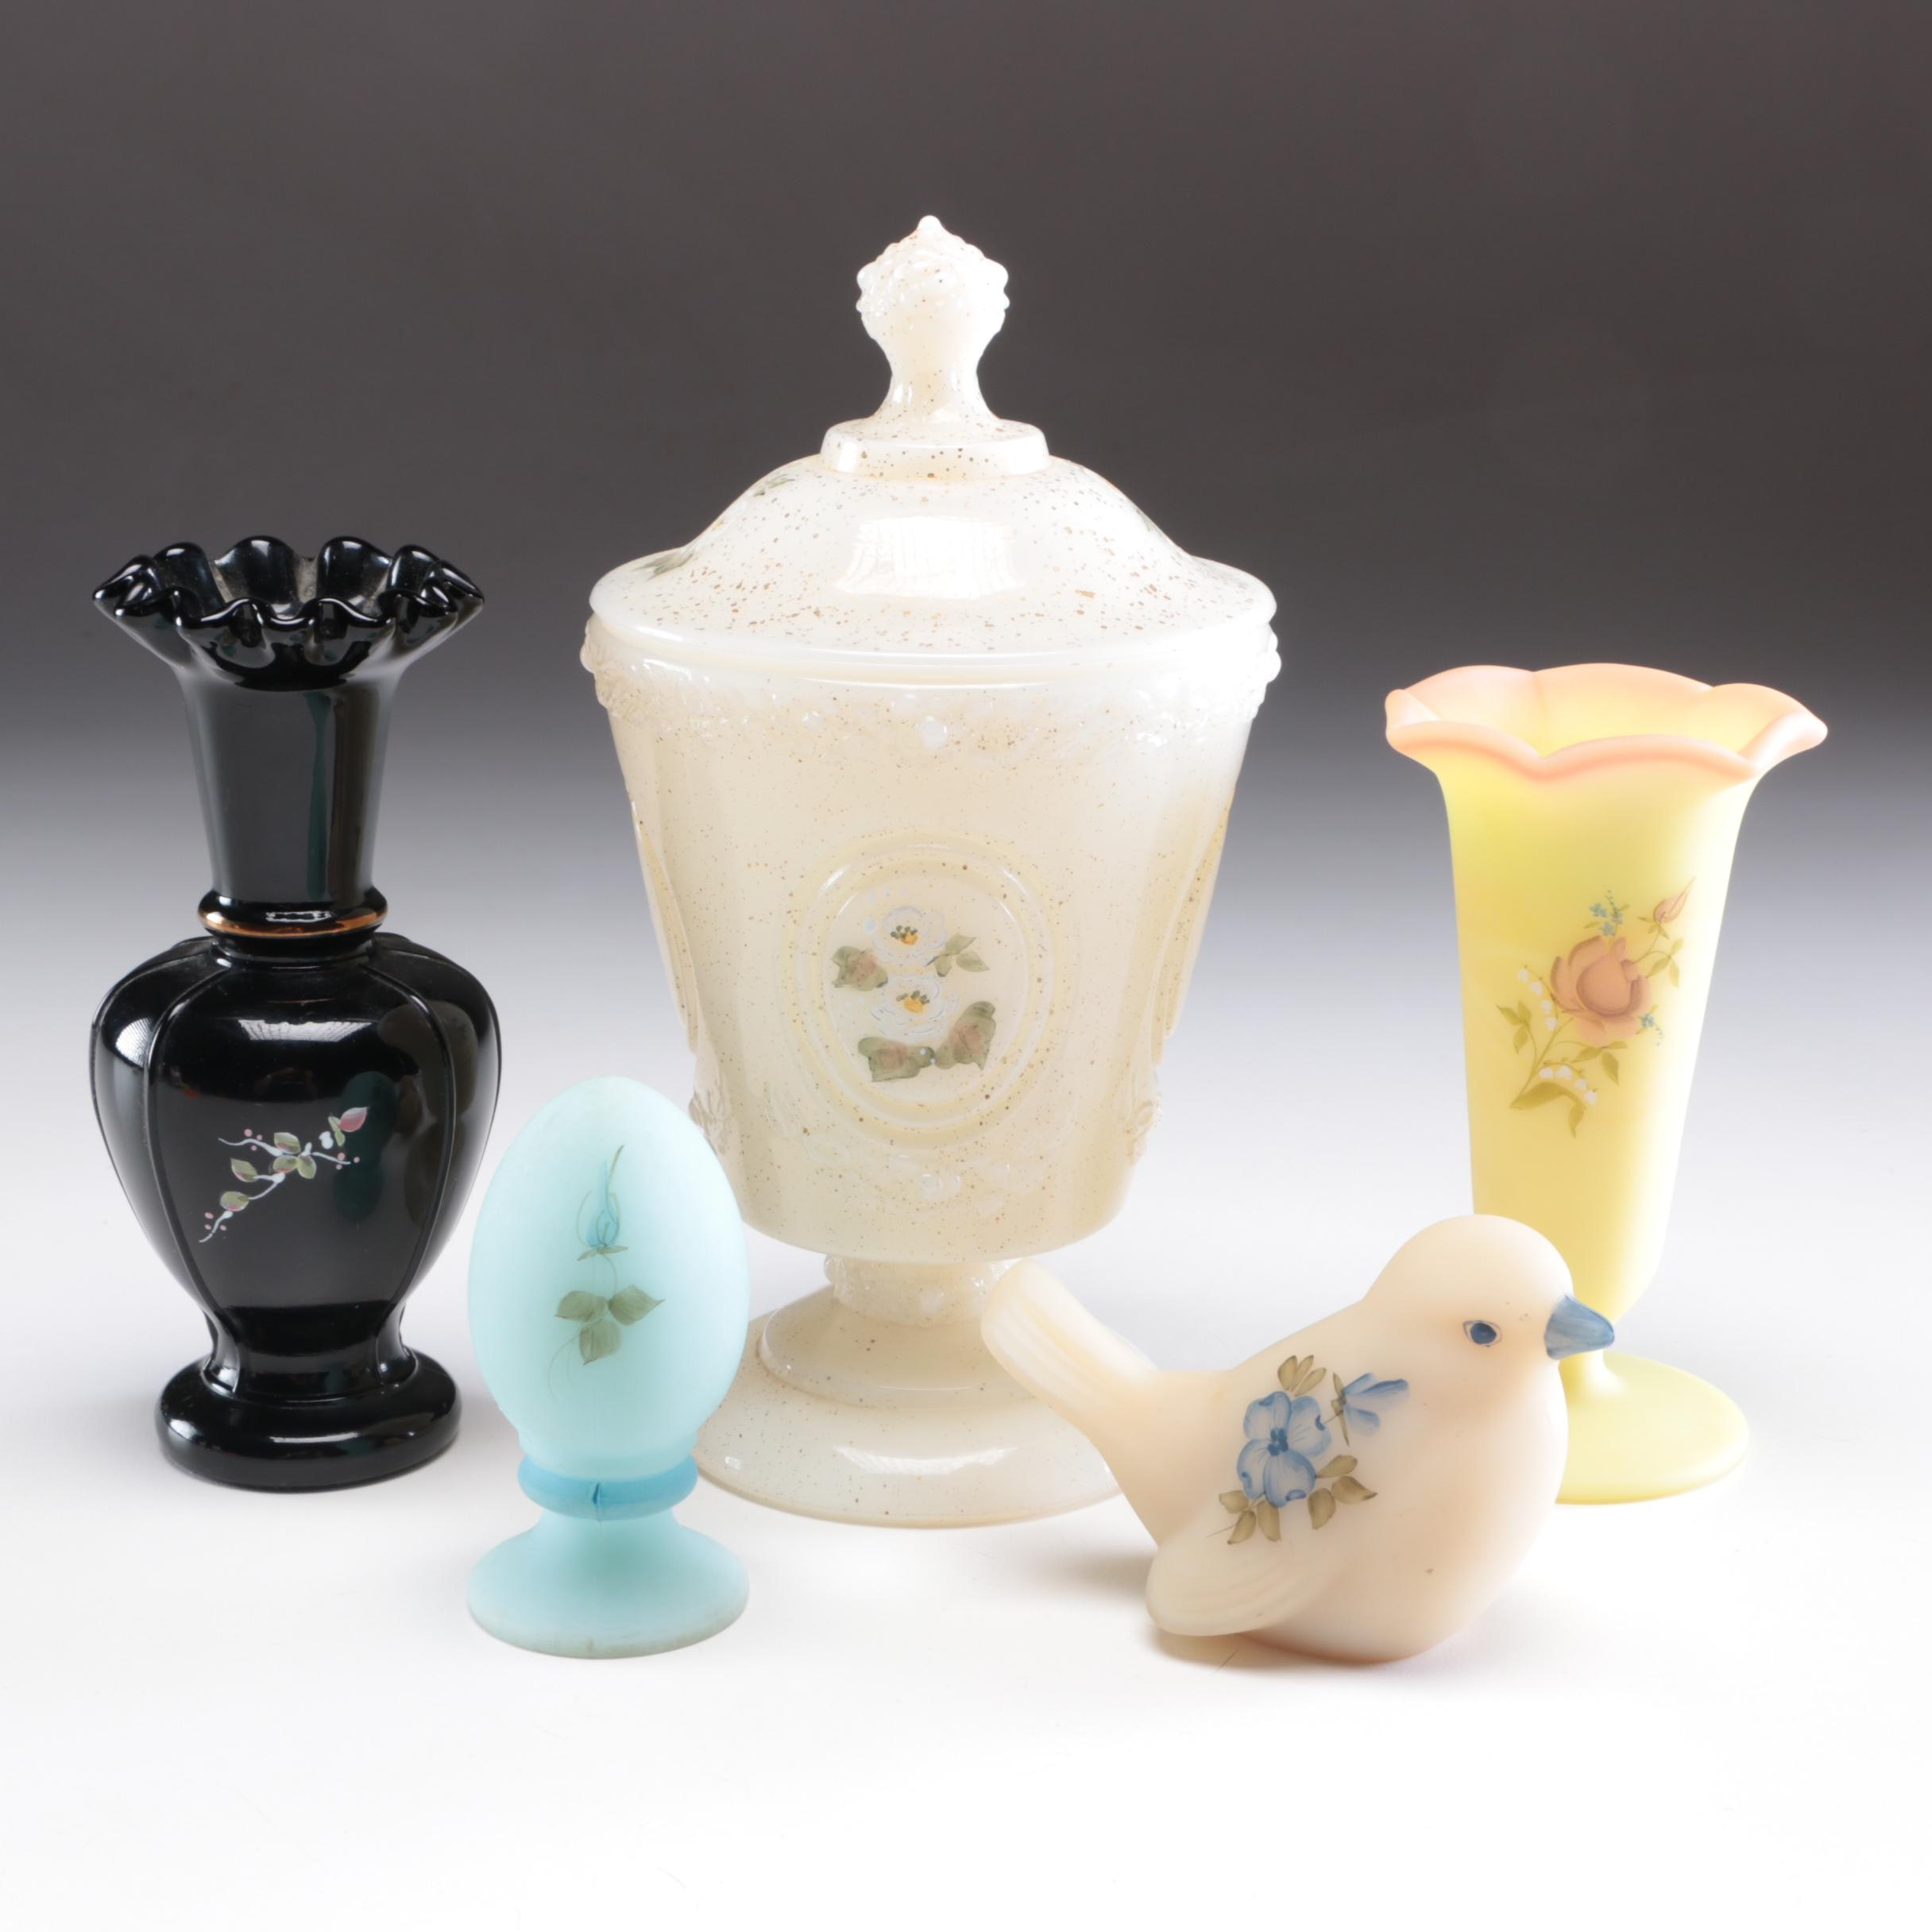 Fenton Hand-Painted Vase, Candy Dish, and Others